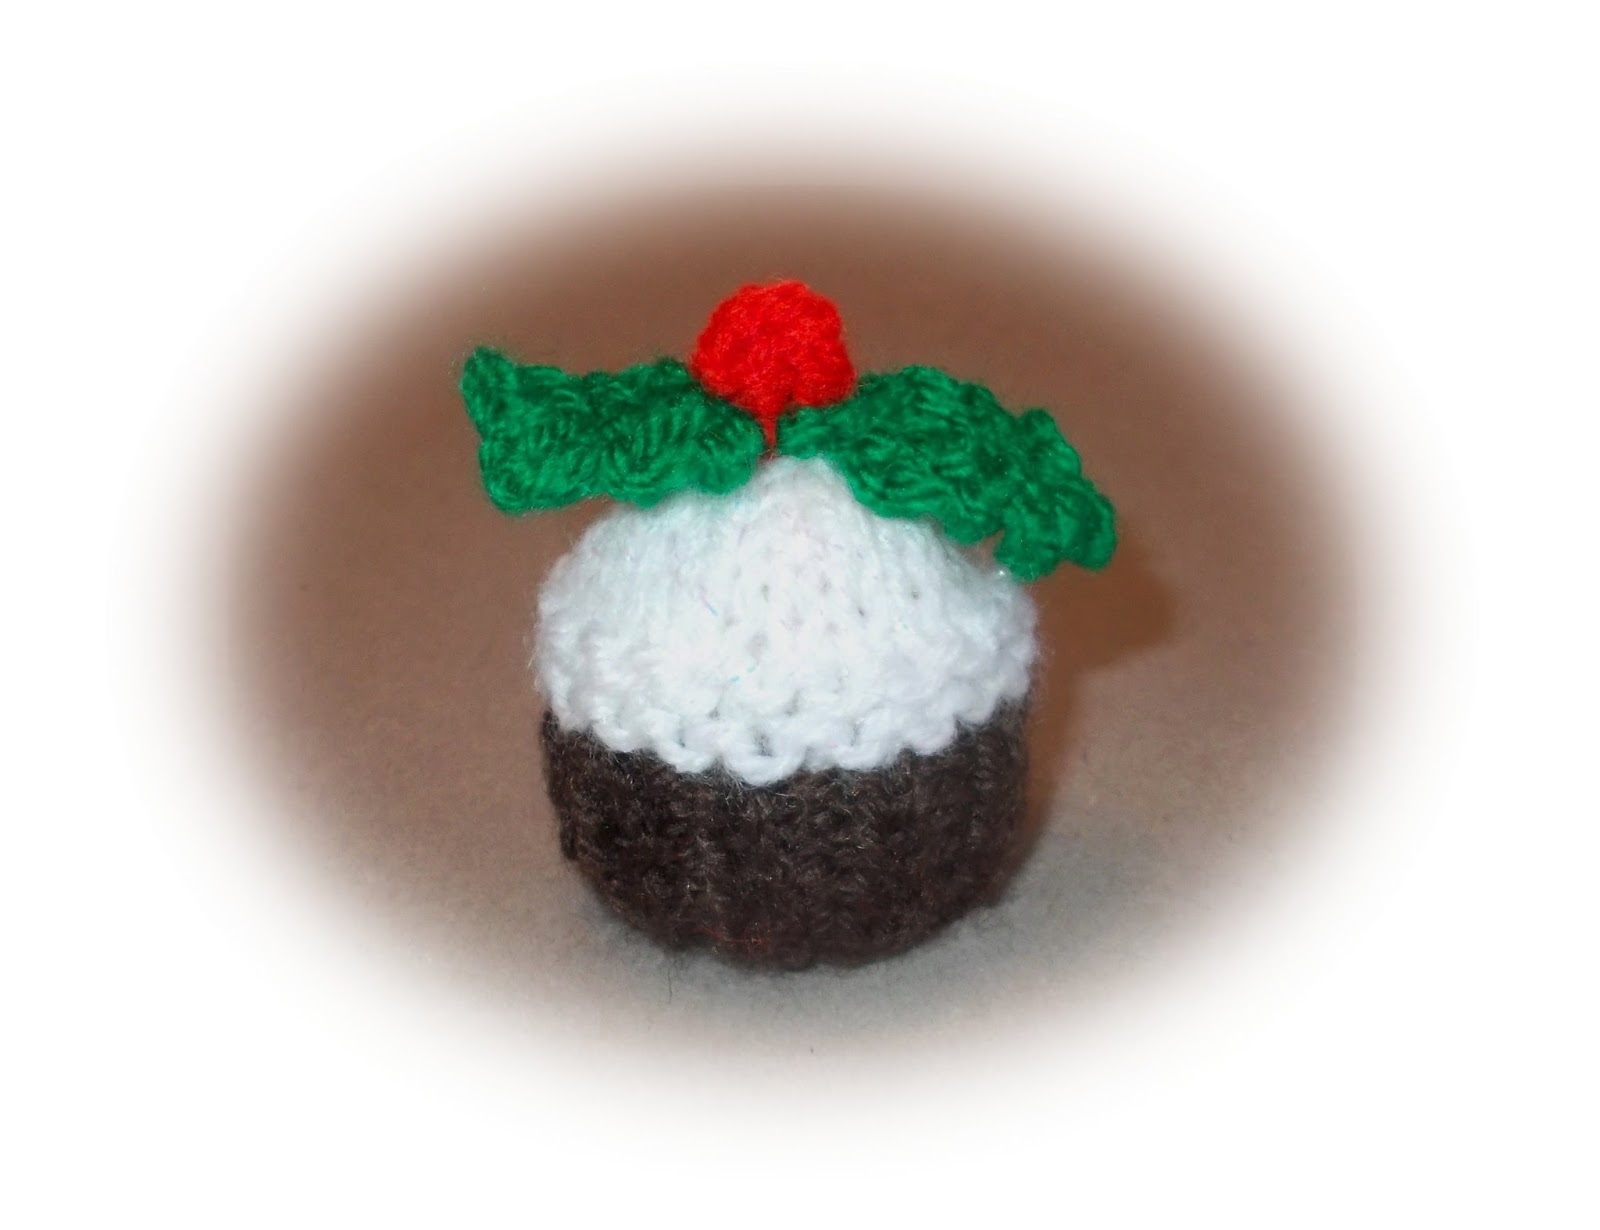 Knitting Pattern For Mini Xmas Pudding : mariannas lazy daisy days: Mini Christmas Pudding